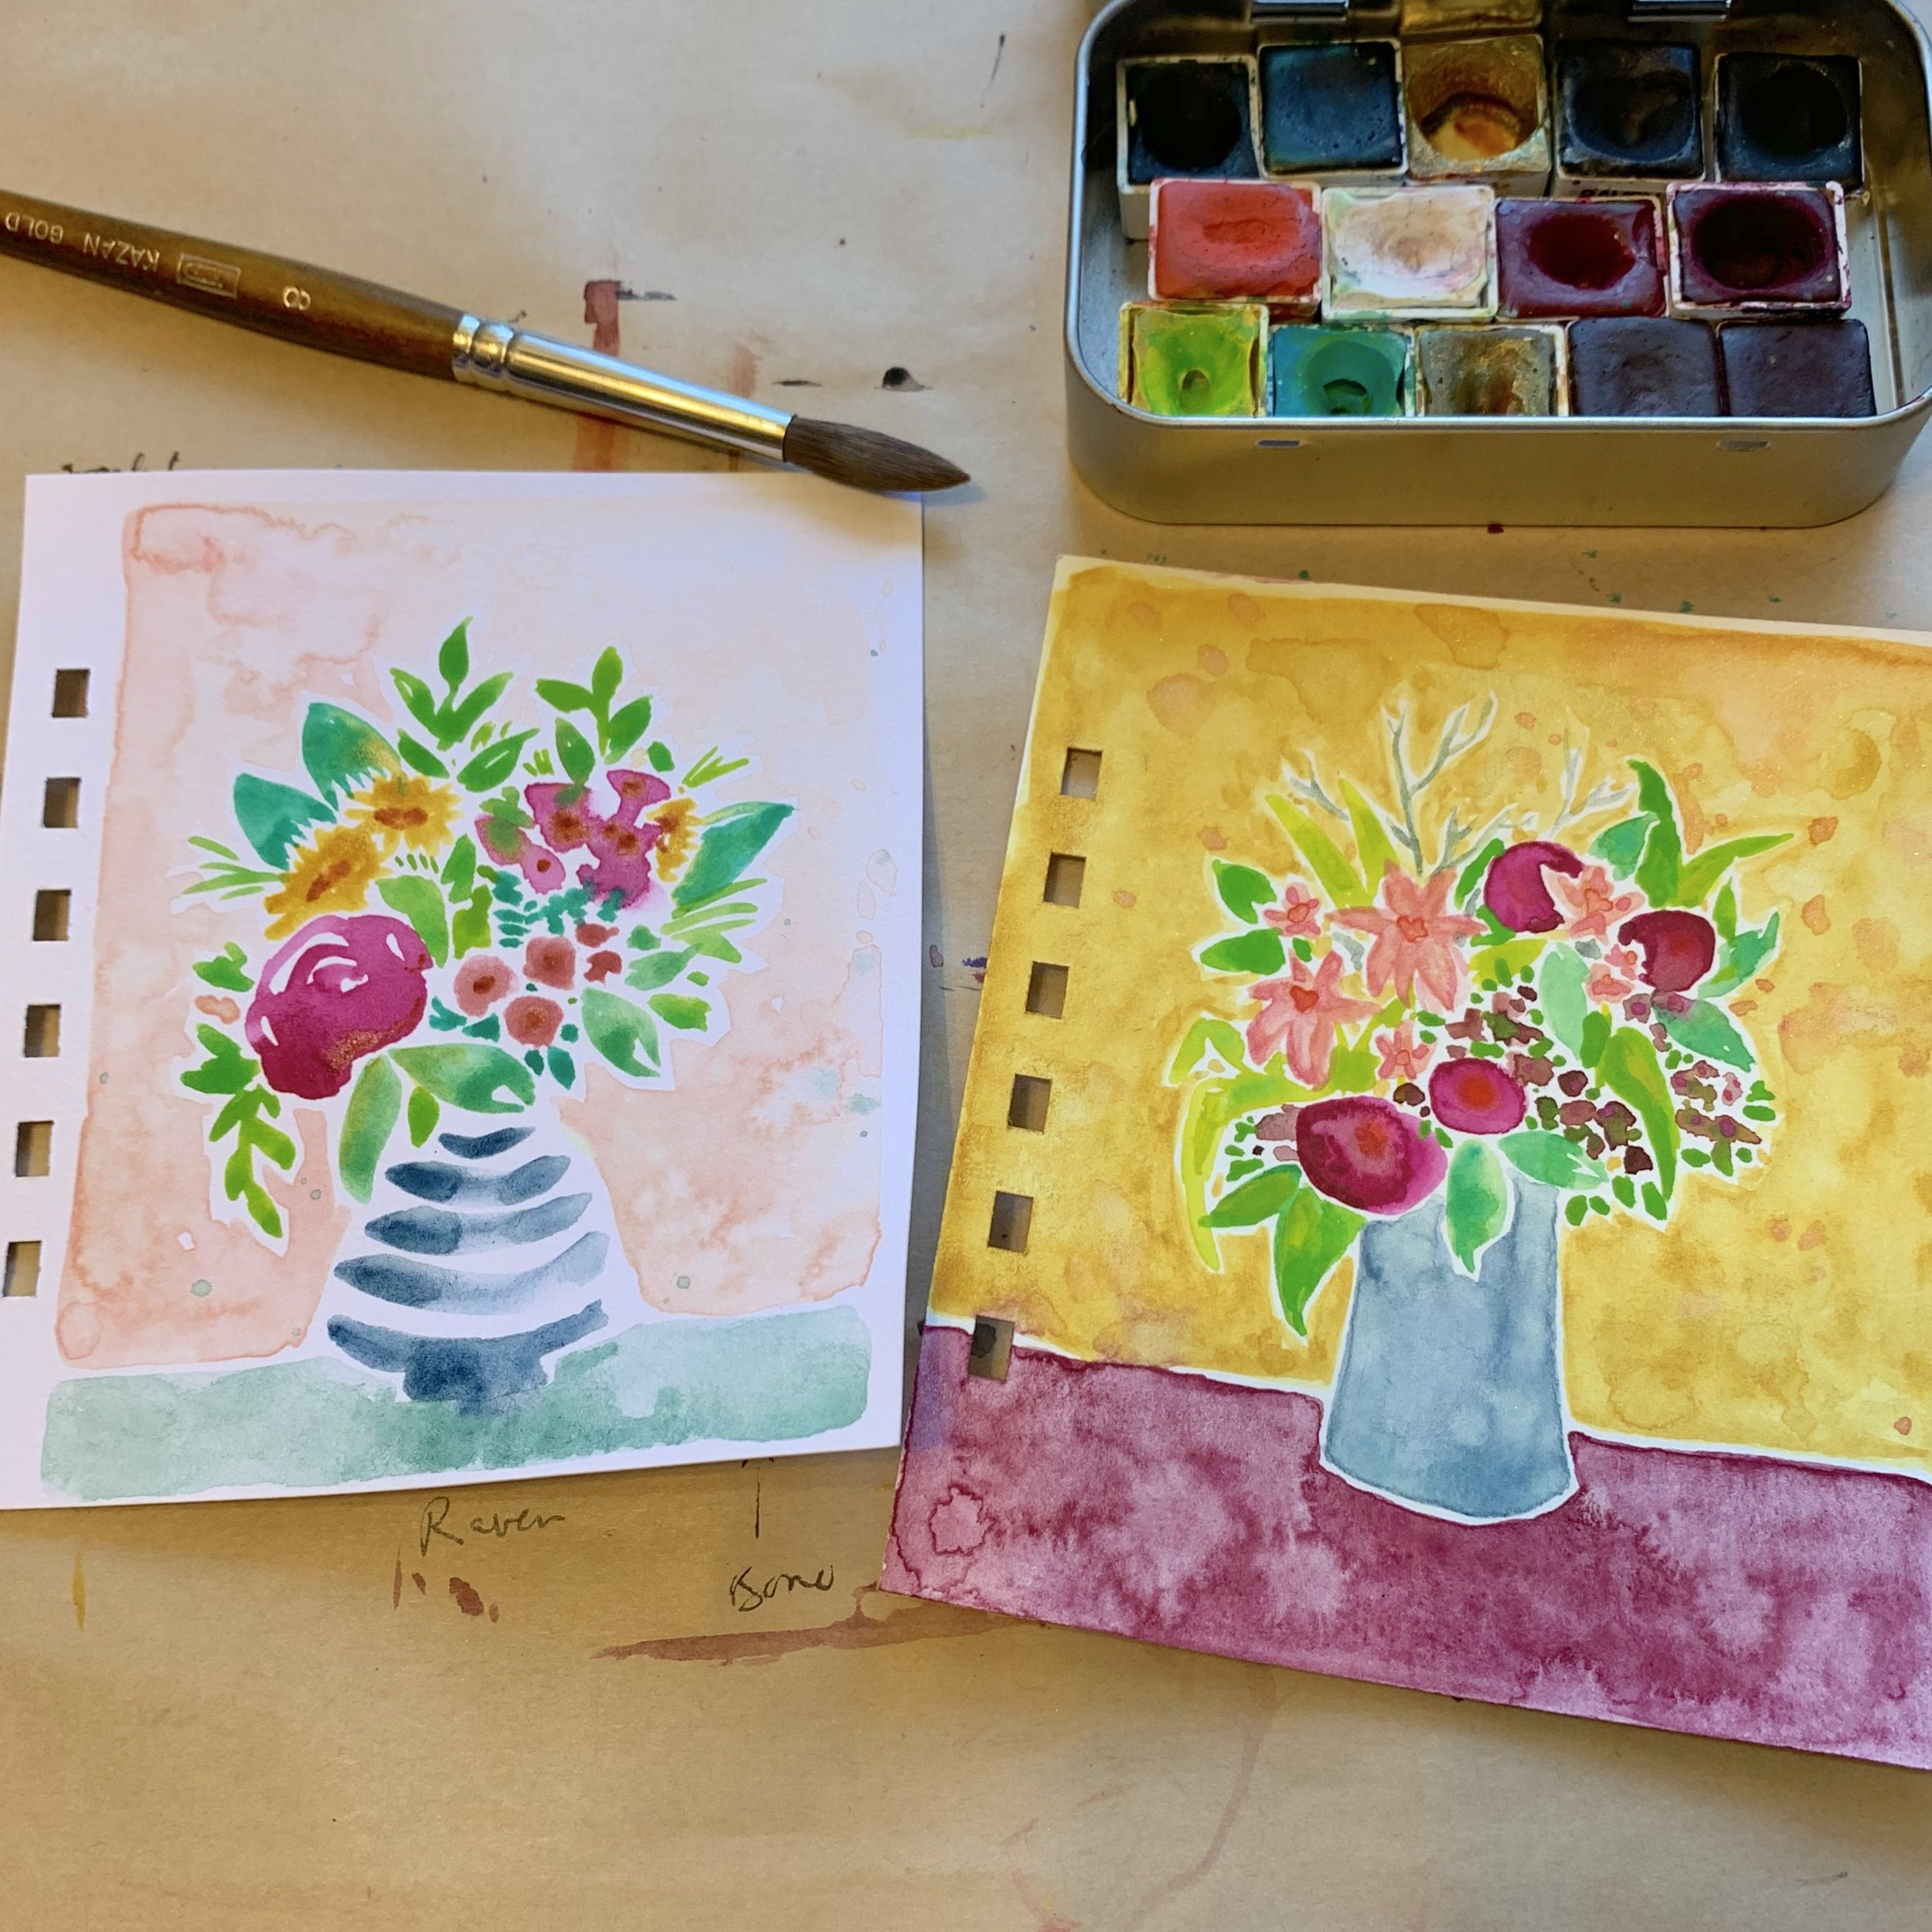 We might not have time for the floral pages, but hopefully they'll inspire you to experiment on your own at home!